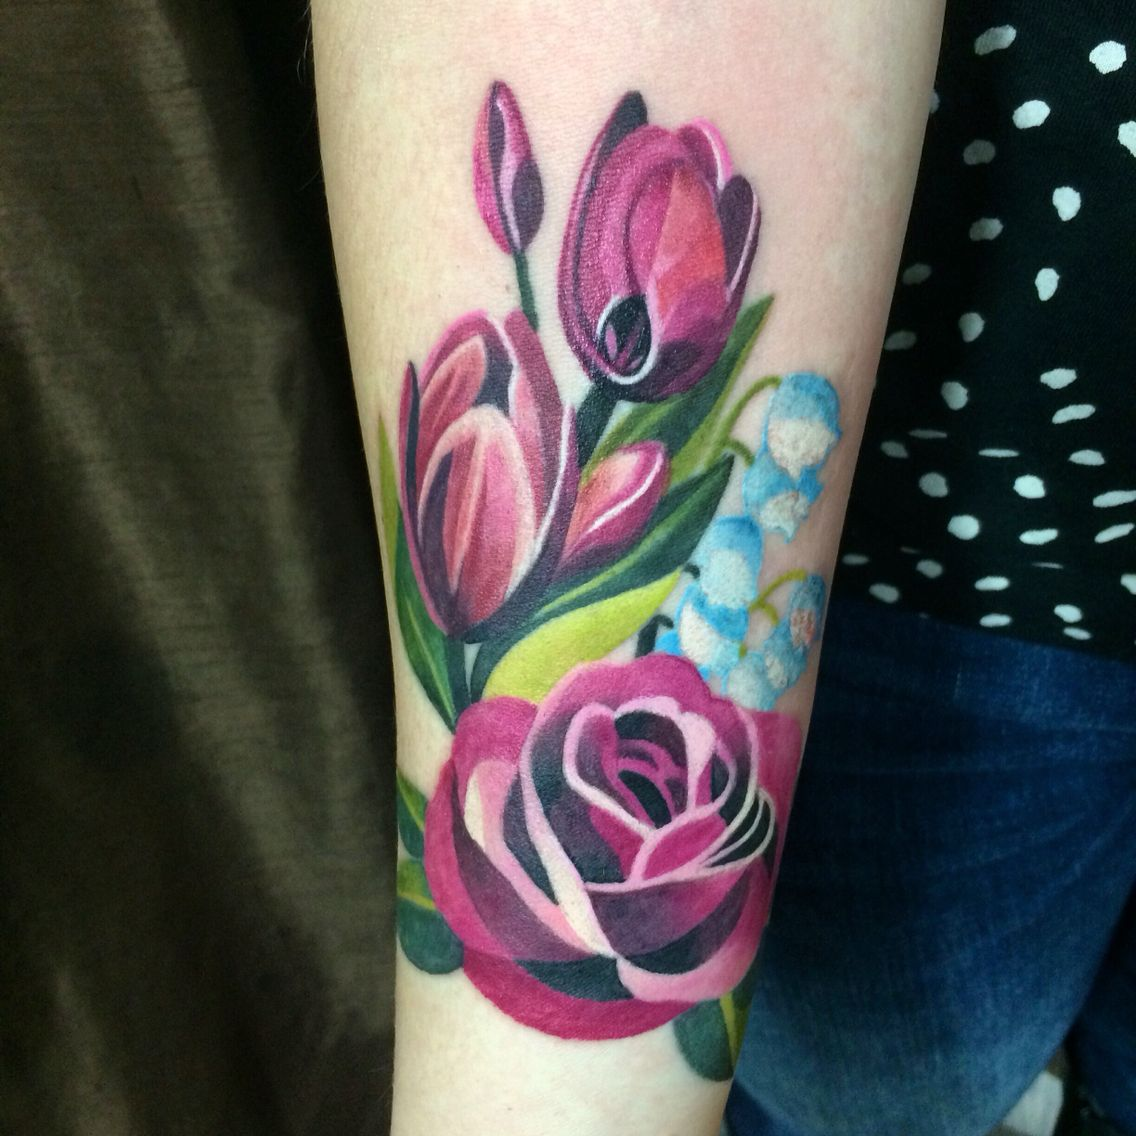 My Sasha Unisex Inspired Floral Tattoo I Love It Tulips Lily Of